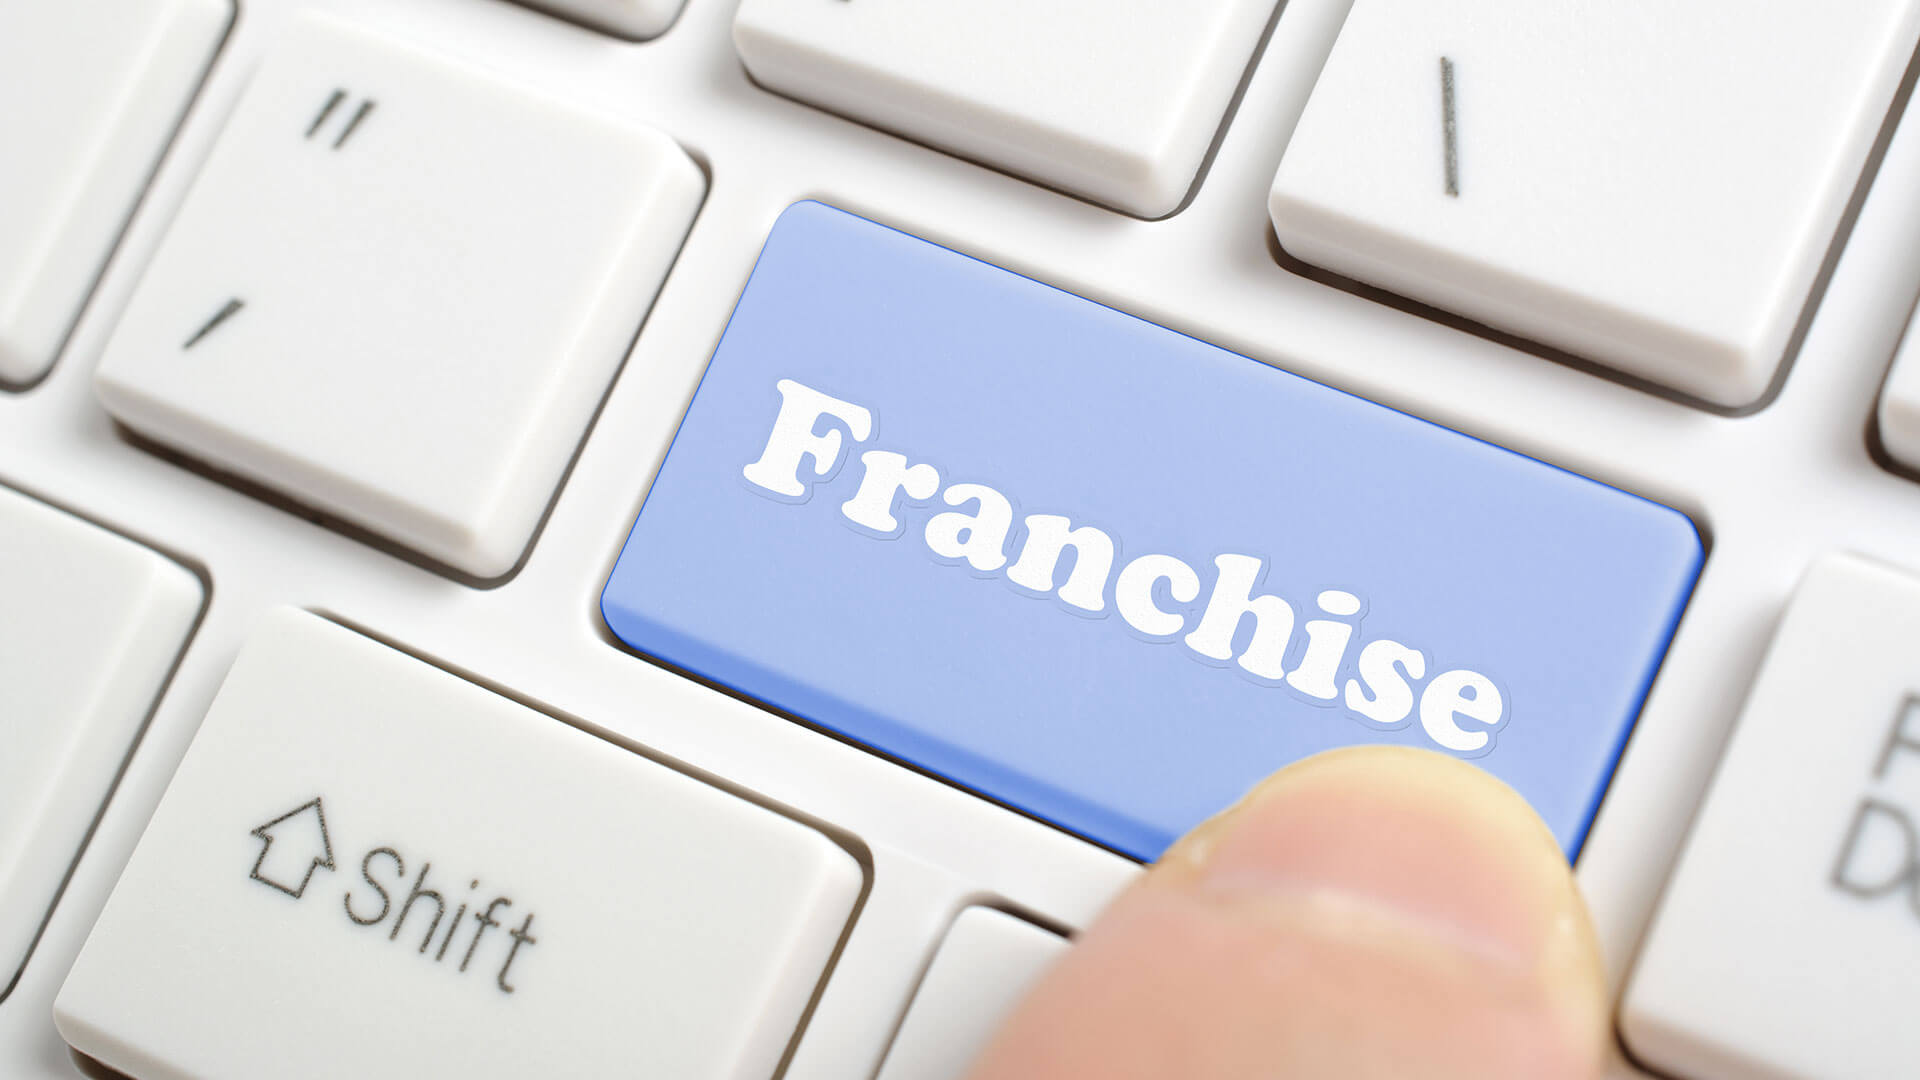 Franchise Keyboard Button Image - Search Influence